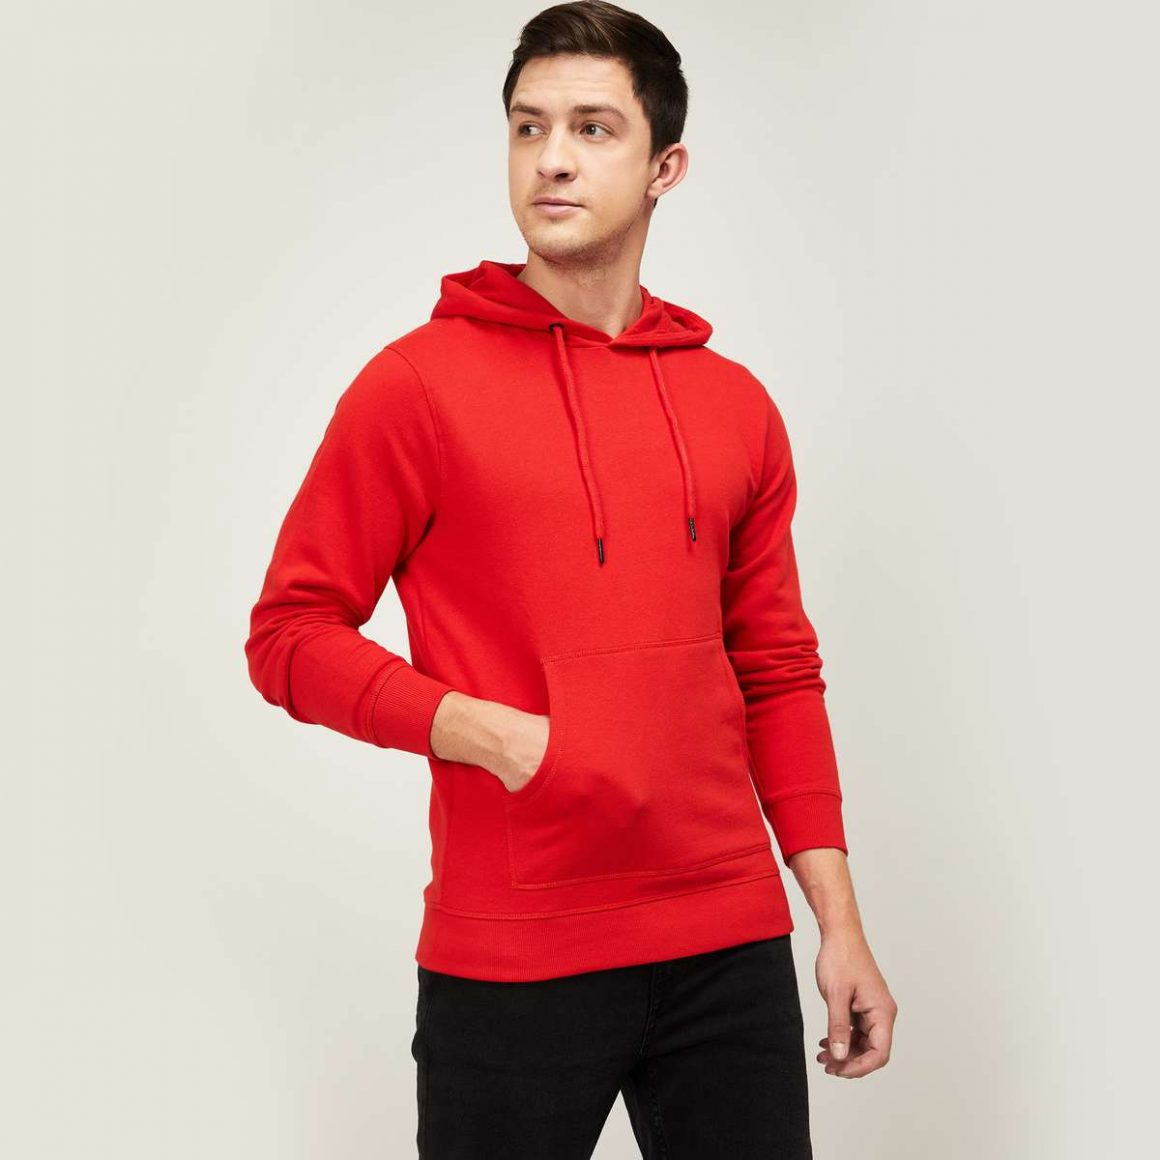 Red Hoody Jacket - Fame Forever by Lifestyle